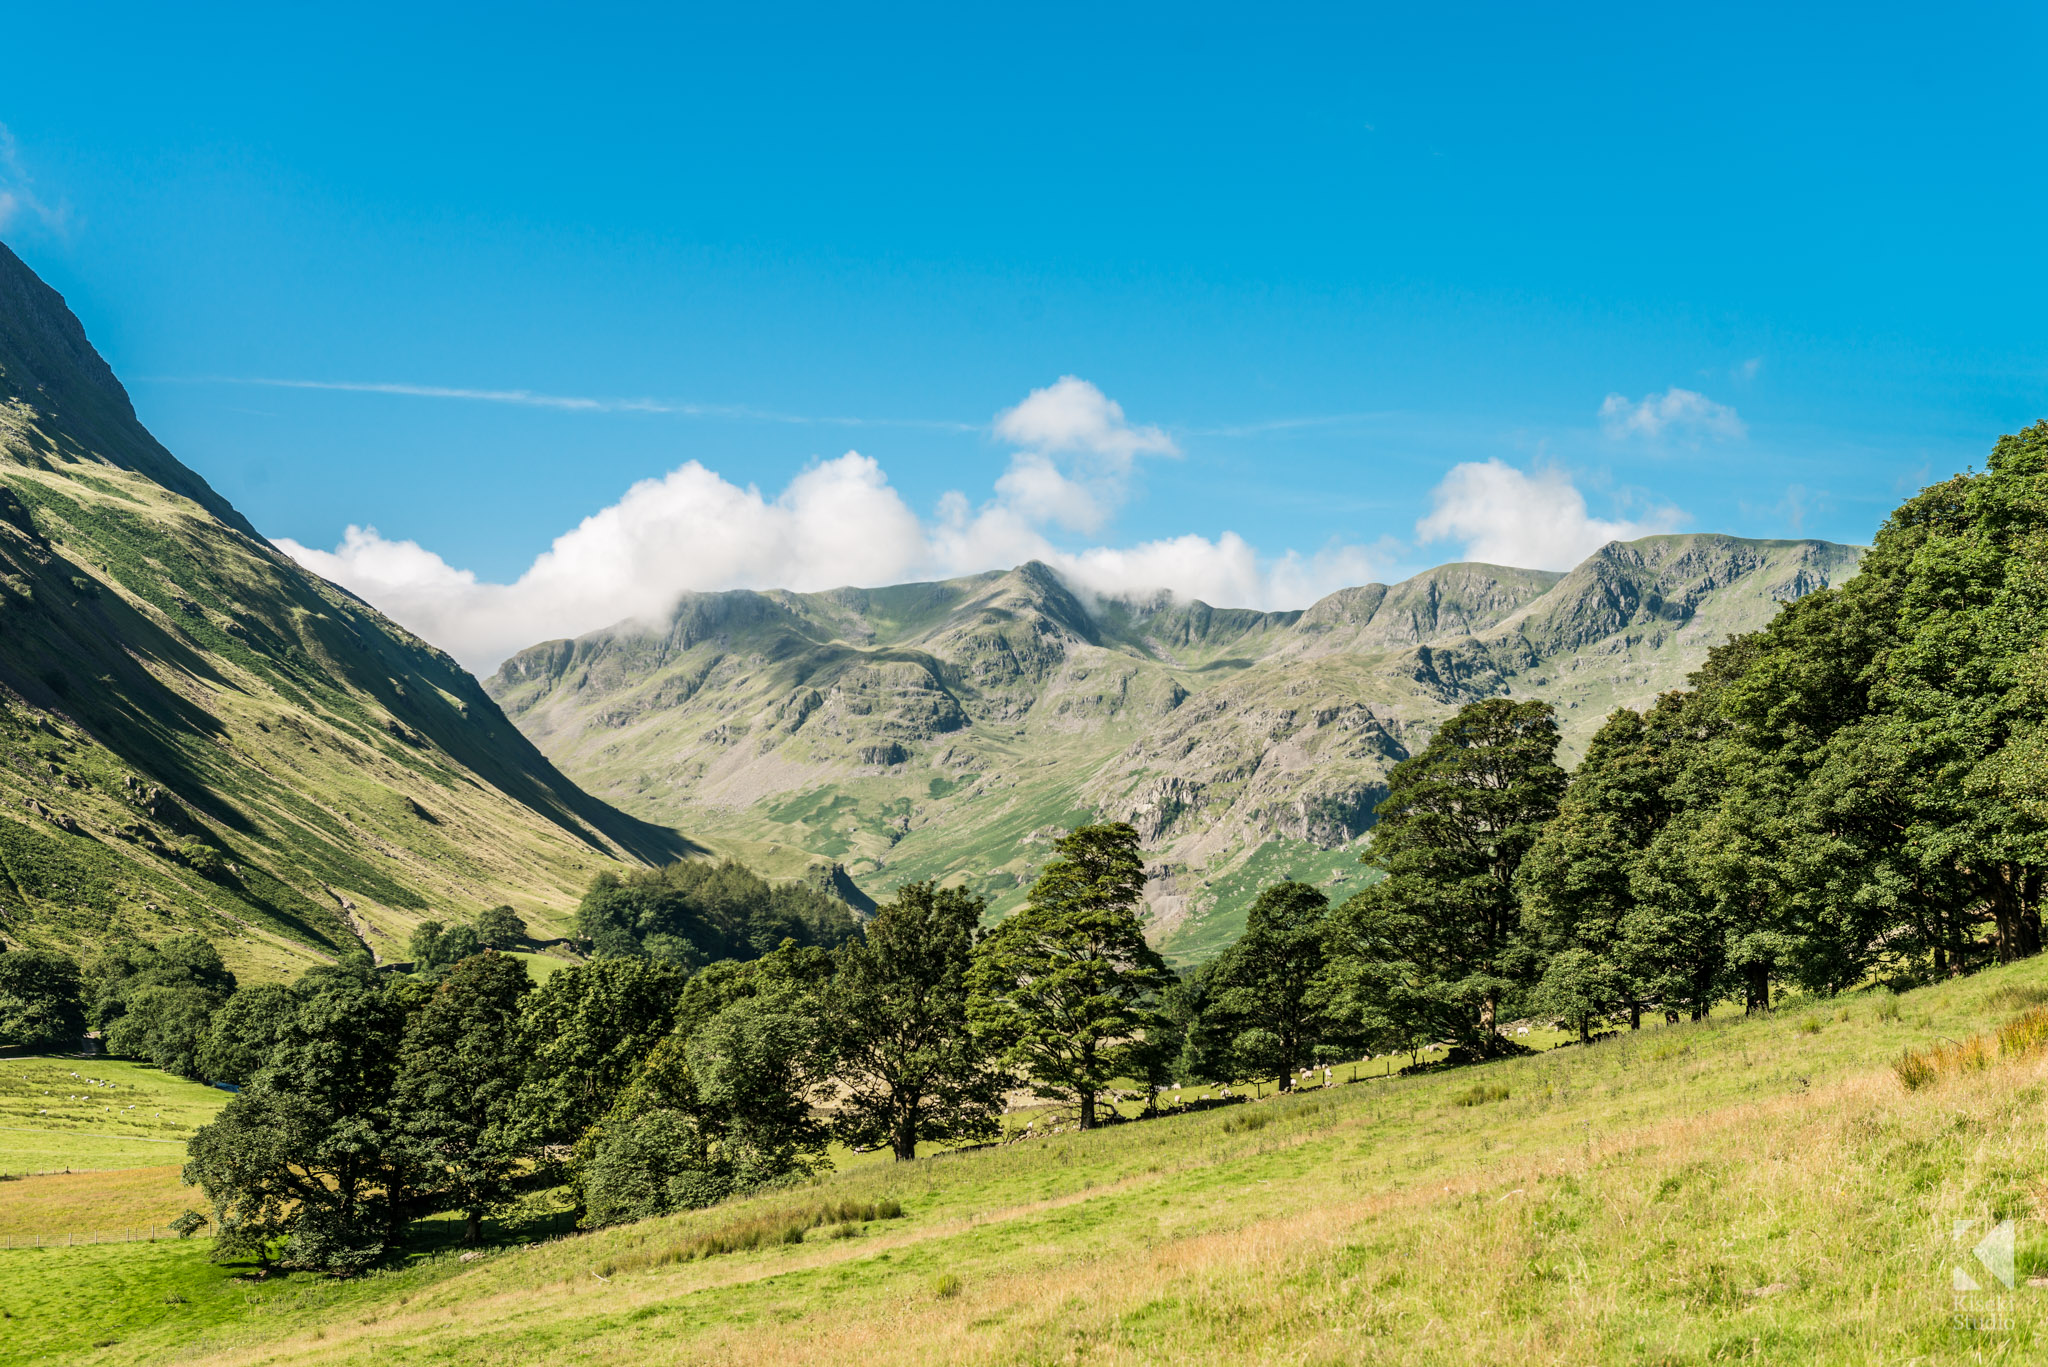 Looking towards the mountains from Patterdale